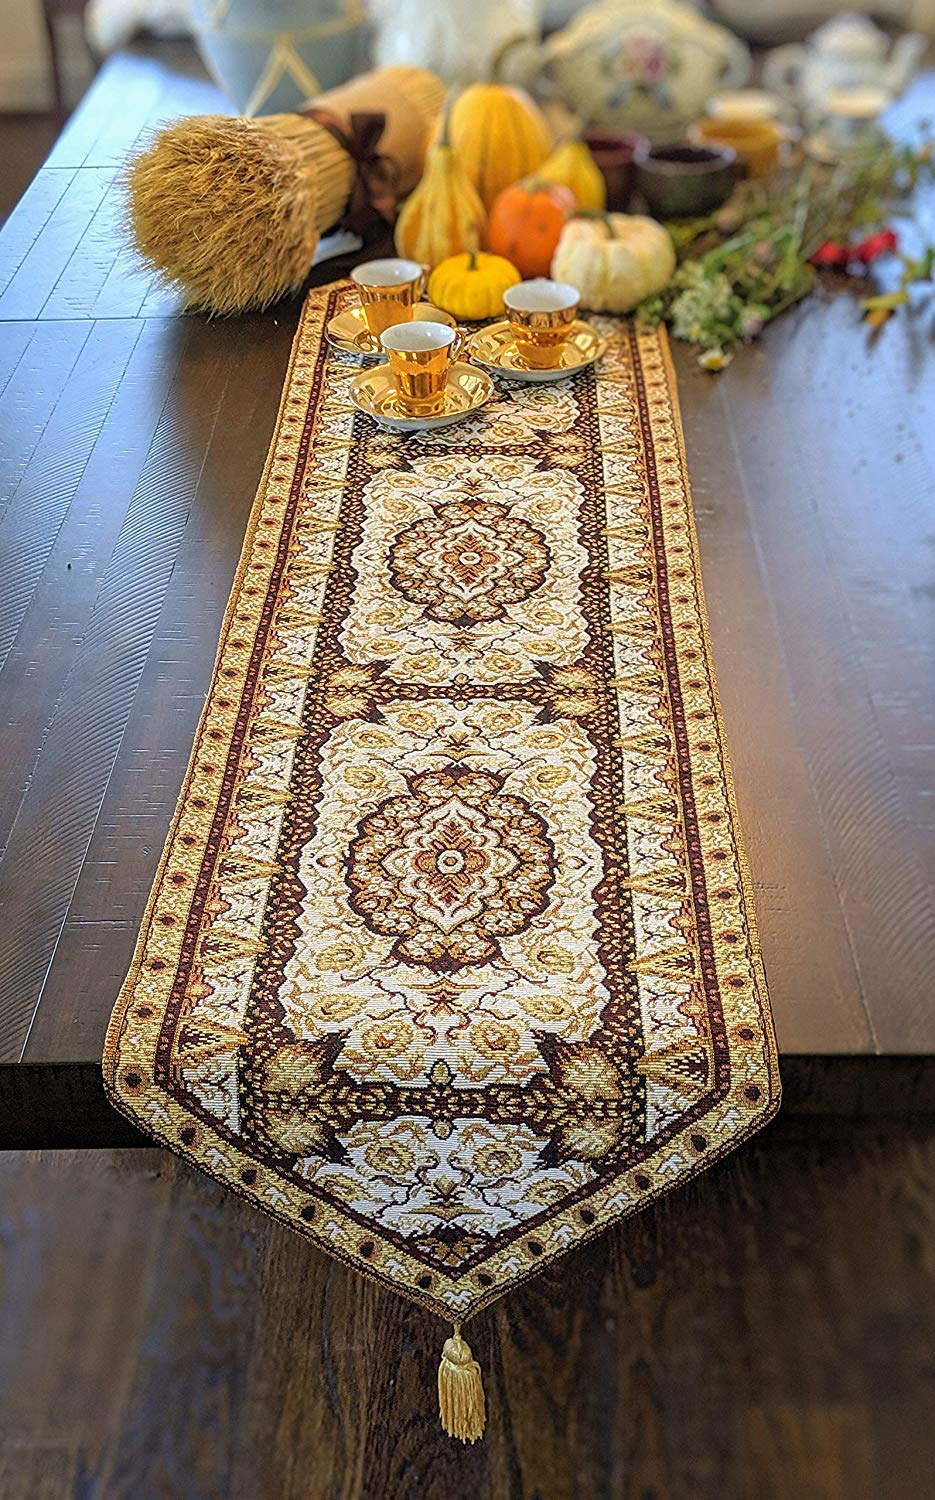 """DaDa Bedding Elegant Tapestry Table Runner - Intricate Royal Persian Rug Golden Opulence - Decorative Floral Damask Cotton Linen Woven Dining Mats - 13"""" x 54"""""""